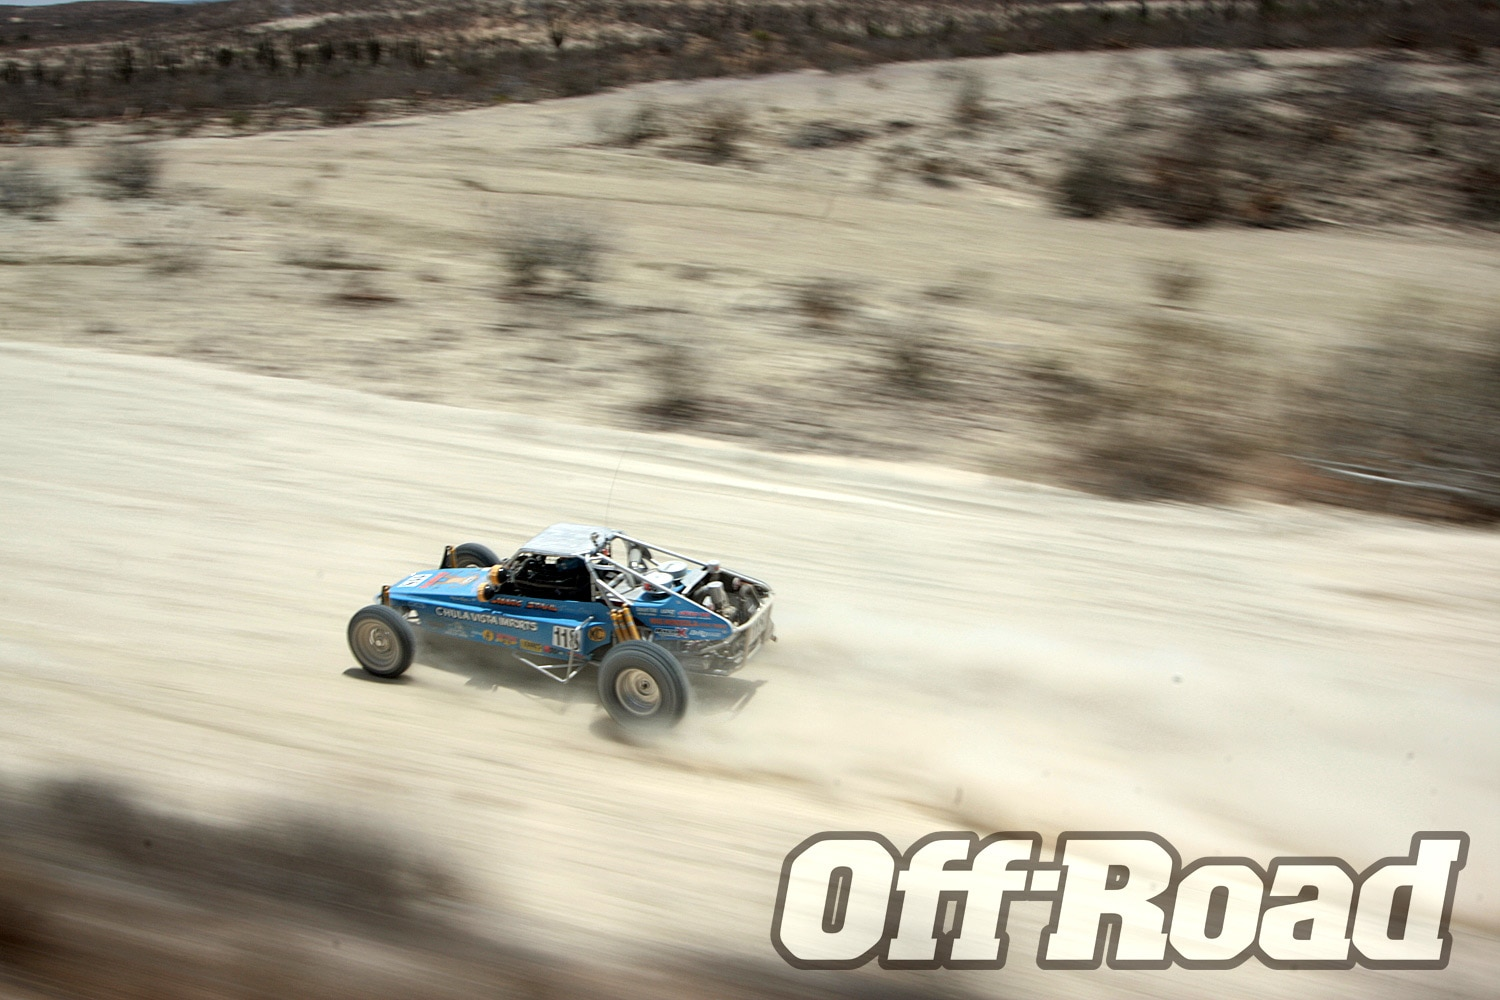 092211or 07+chenowth 1000 class 3+2011 norra mexican 1000